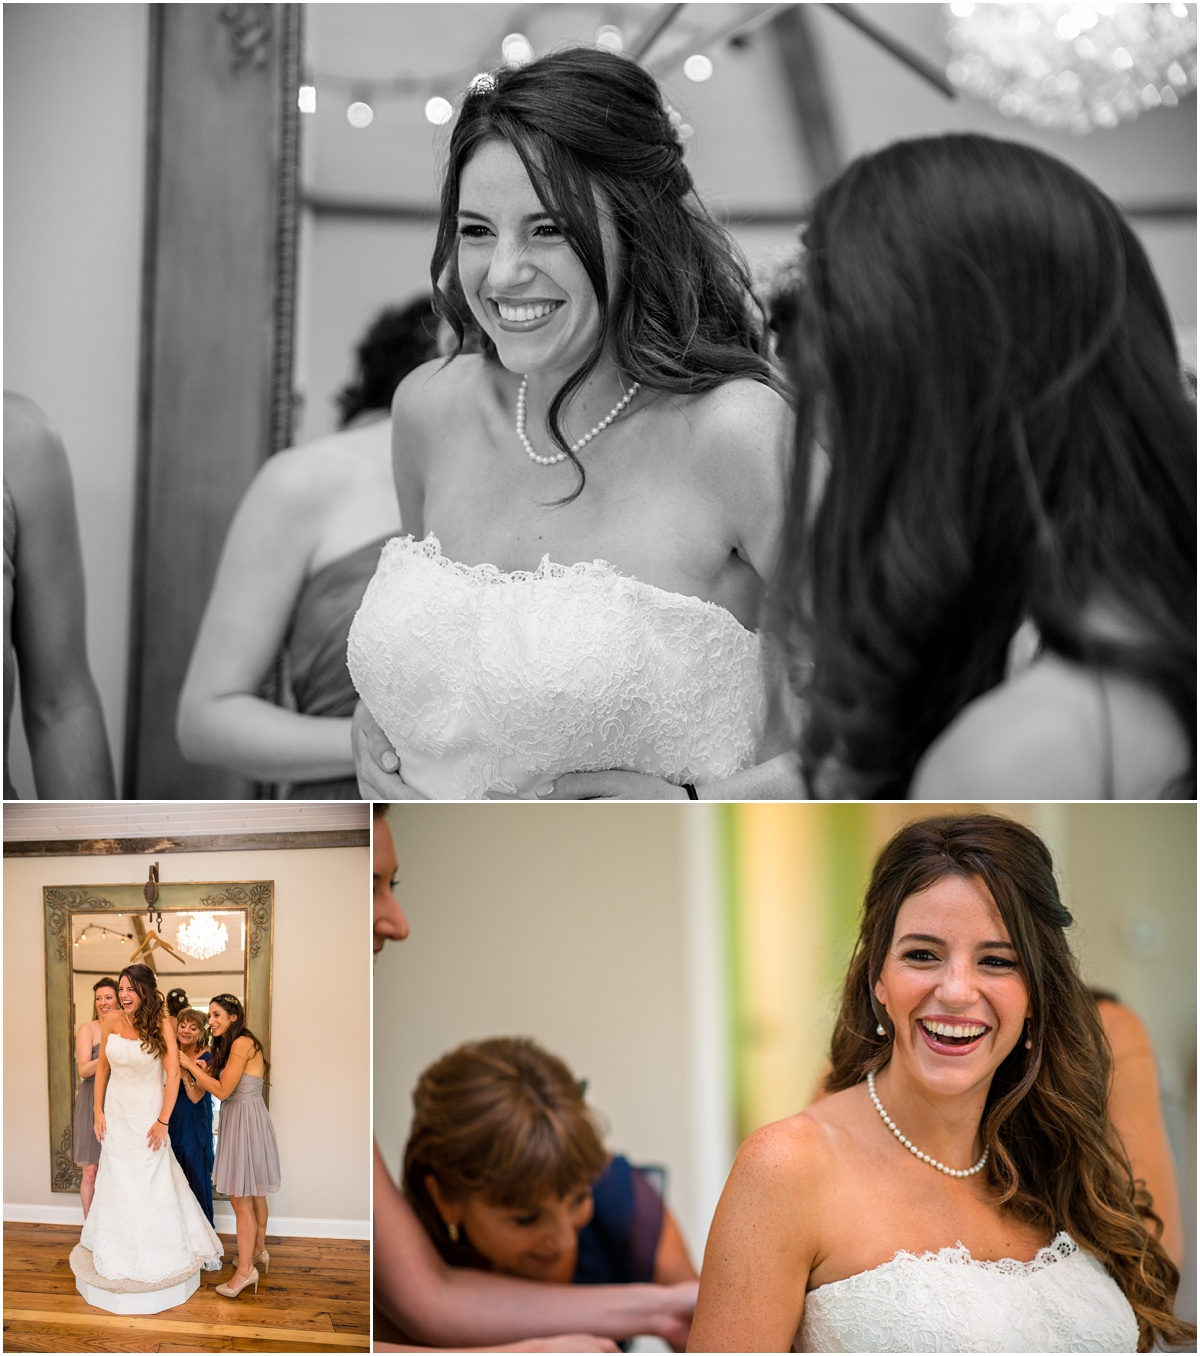 Greg Smit Photography Nashville wedding photographer Mint Springs Farm_0006